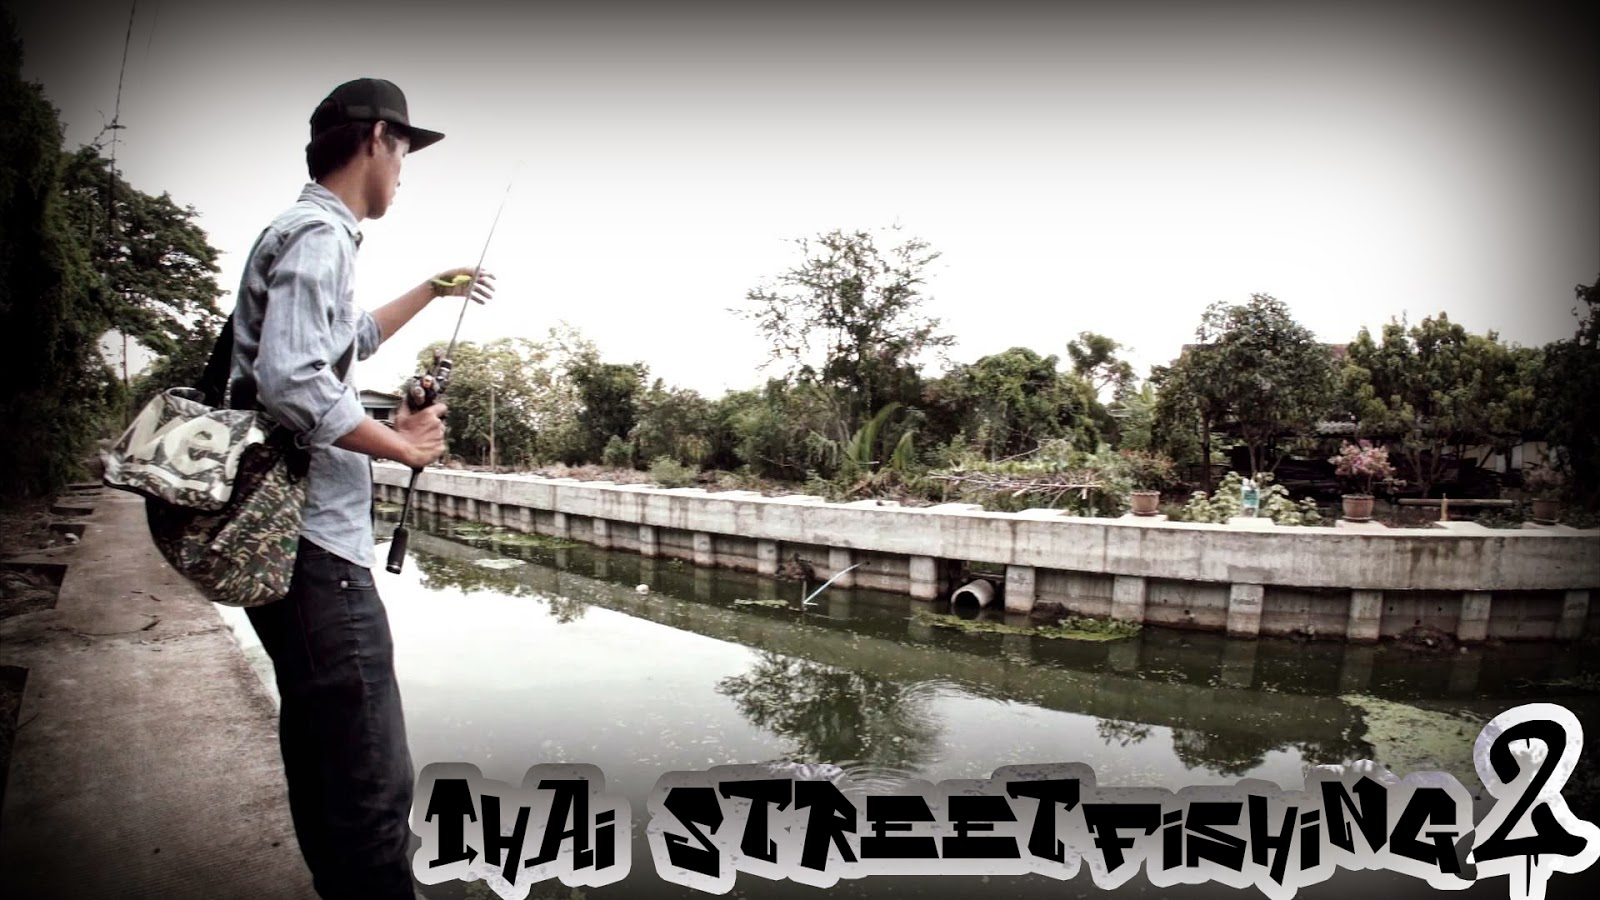 peche frog video street fishing thai streetfishing